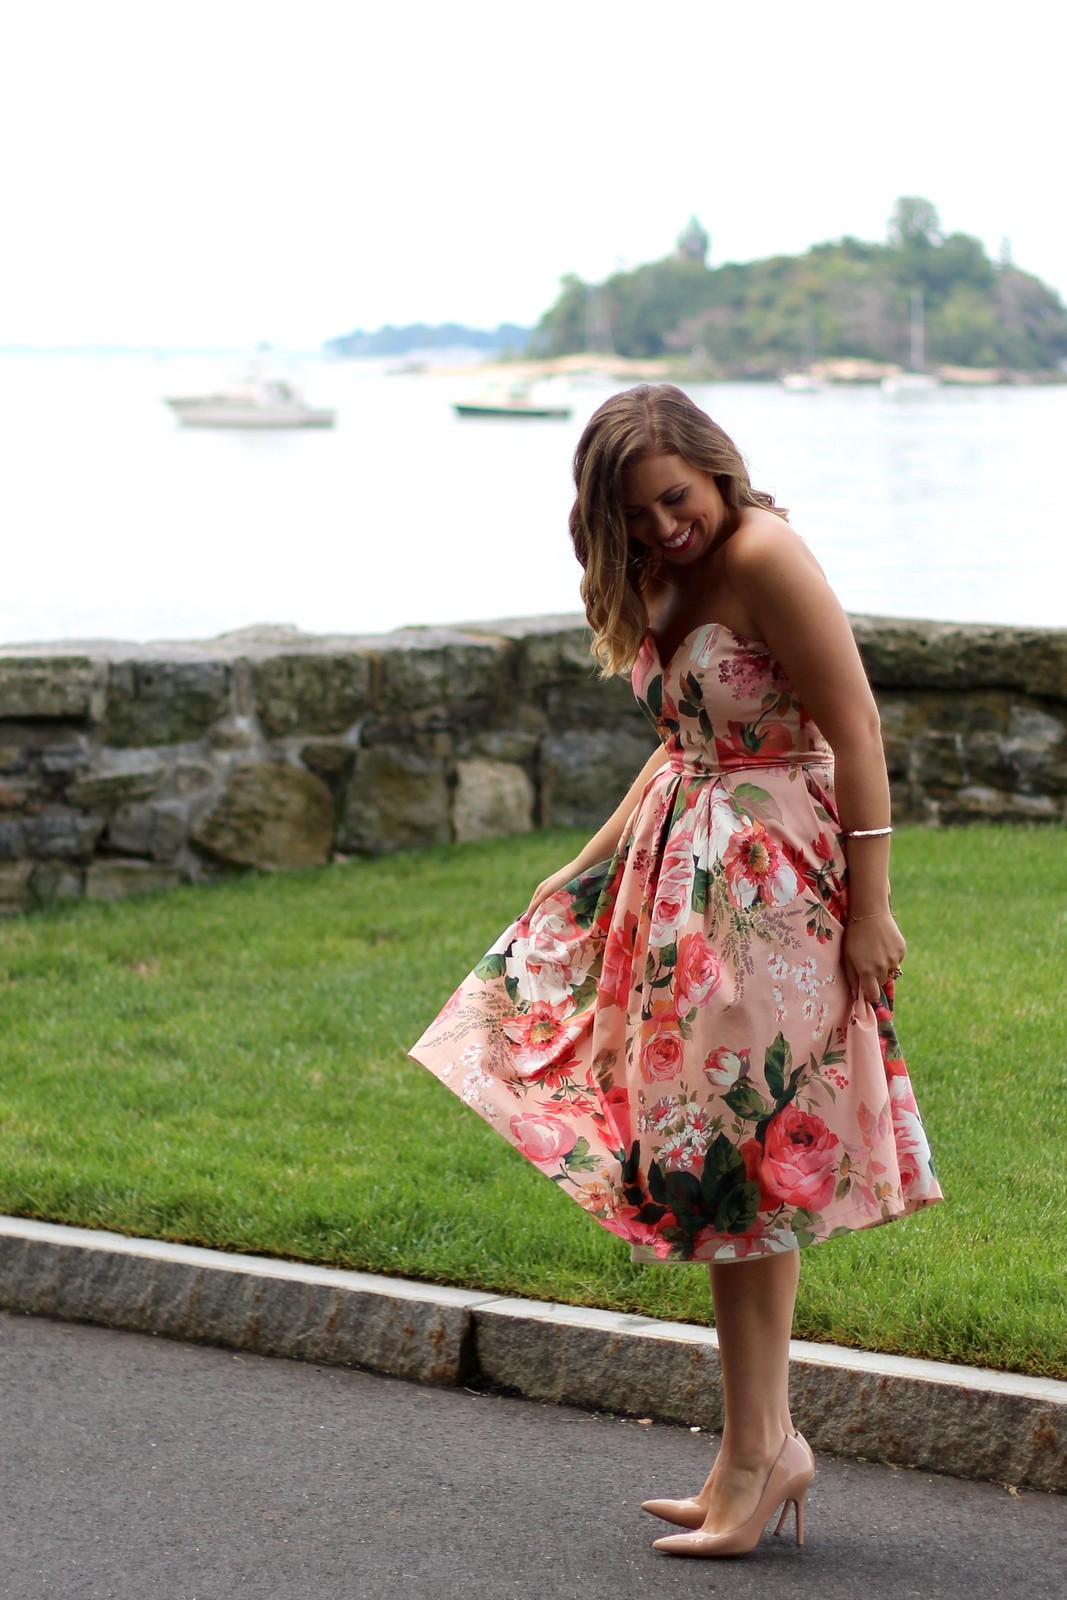 Floral Midi Dress | Wedding Guest Attire | A Look Back at 10 Years of Blogging Living After Midnite Blogger Jackie Giardina